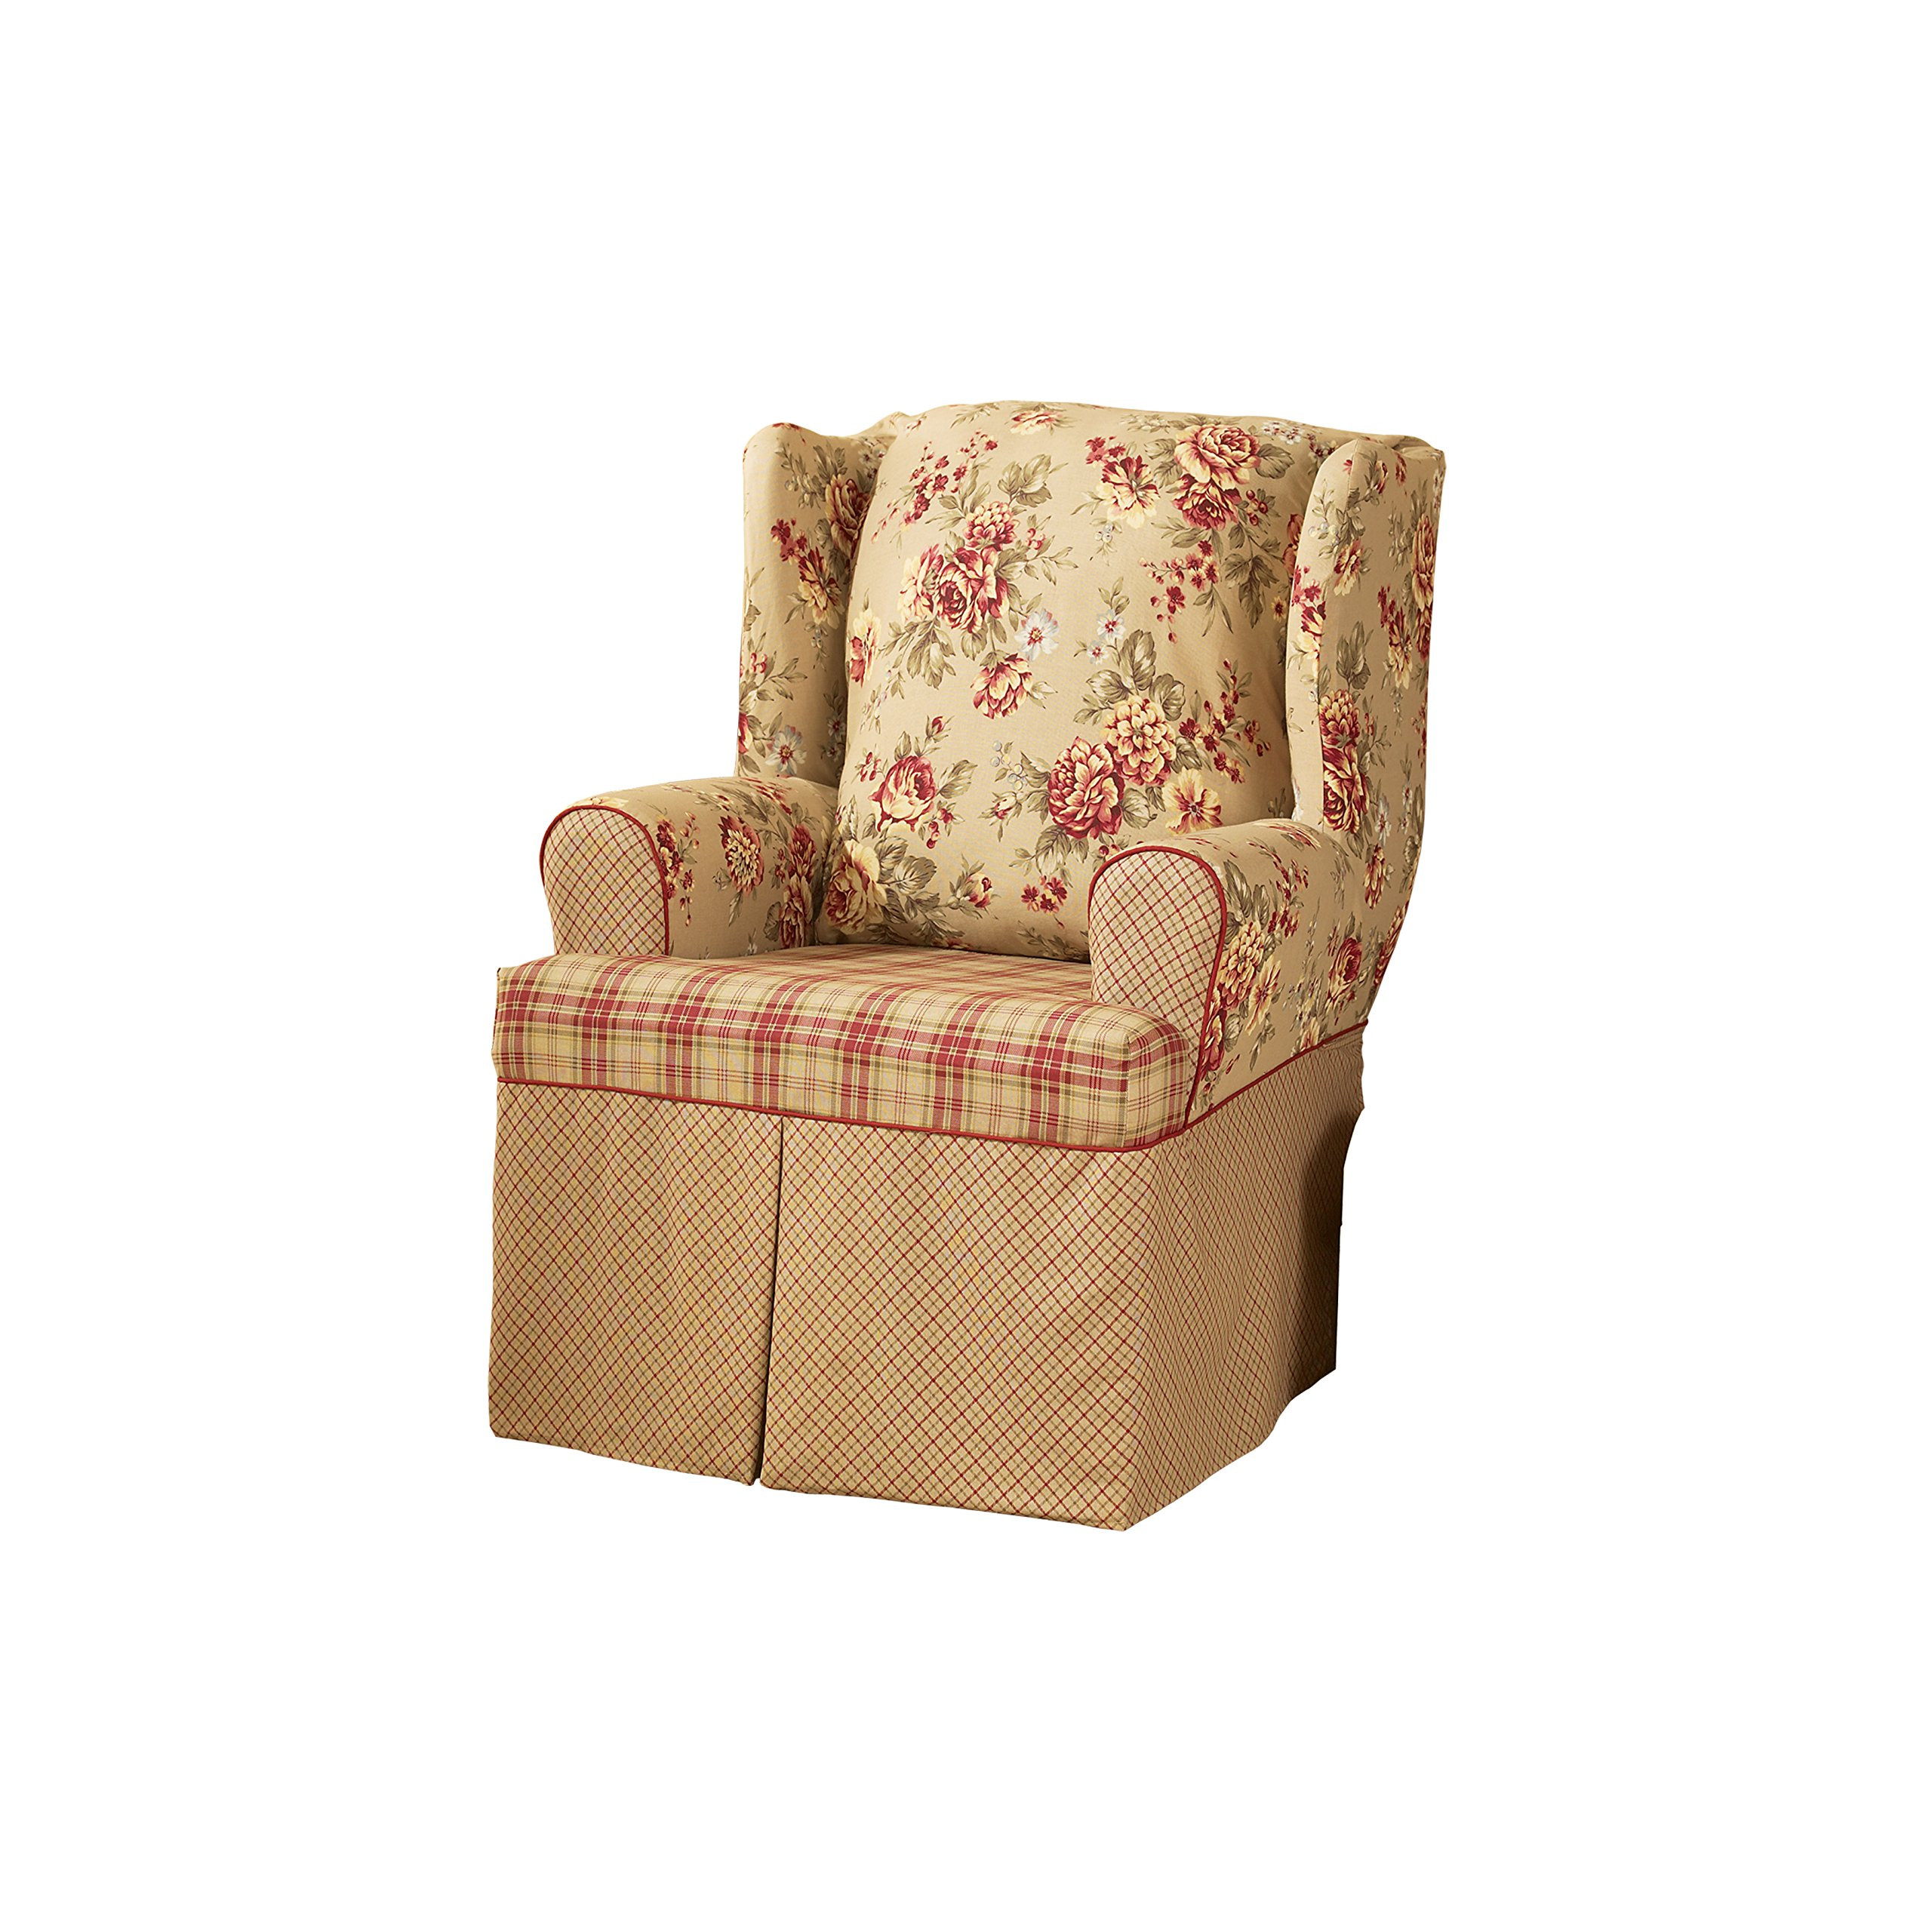 Sure Fit SF29848 Lexington Relaxed Fit 1 Piece Wing Chair Slipcover, Multi